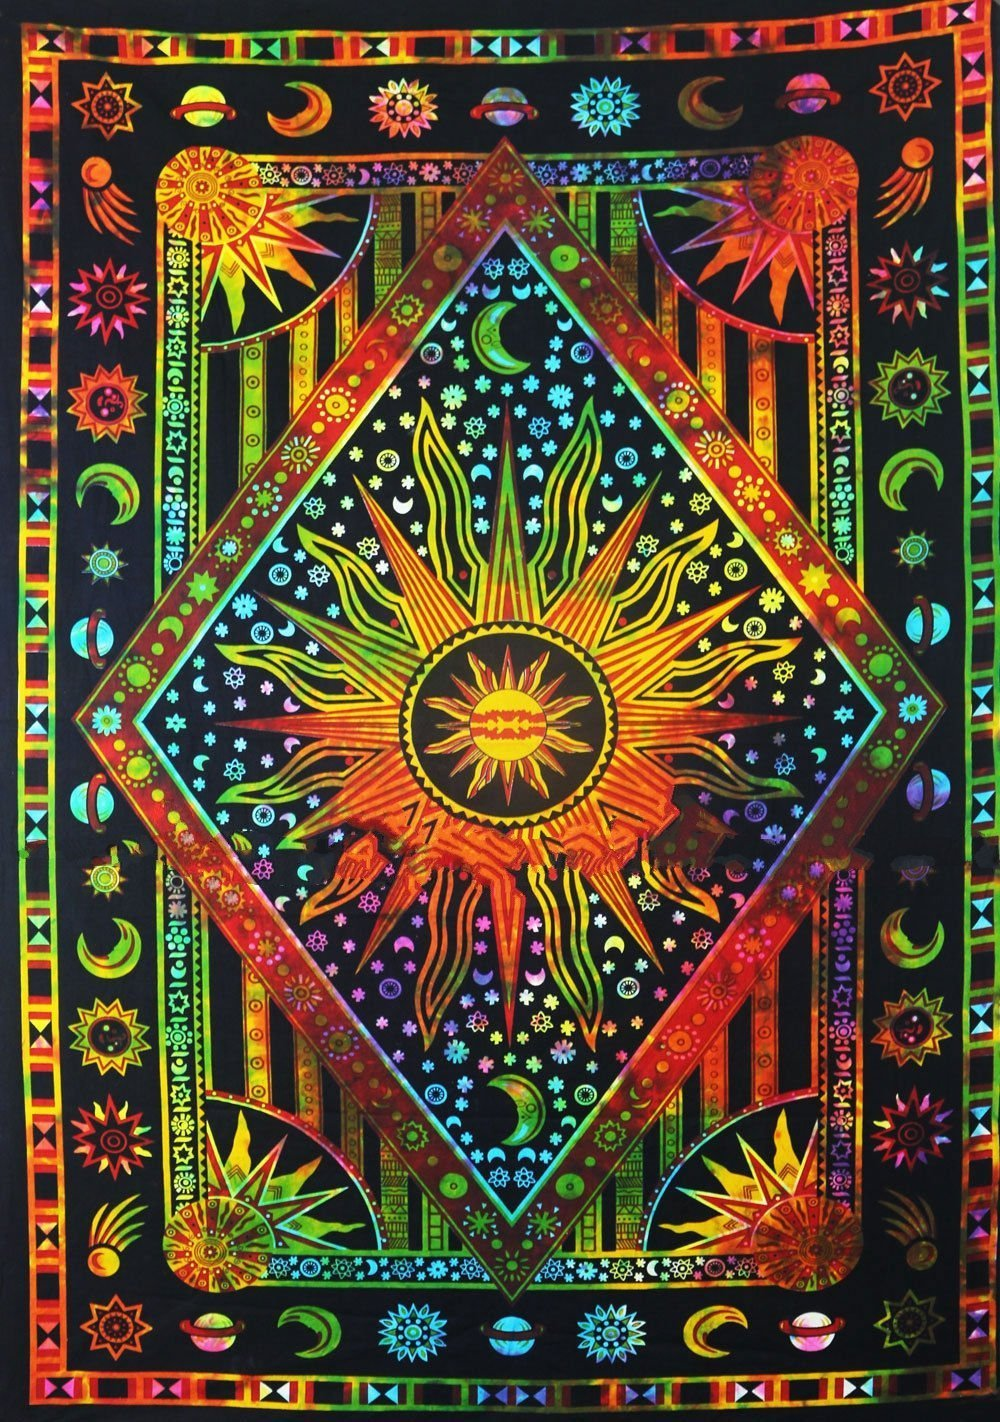 Twin Orange Tie Dye Multi Burning Sun Tapestry, Celestial Sun Moon Planet Bohemian Tapestry Tapestry Tapestry Wall Hanging Boho Tapestry Hippie Hippy Tapestry Beach Coverlet Curtain by RSG Venture